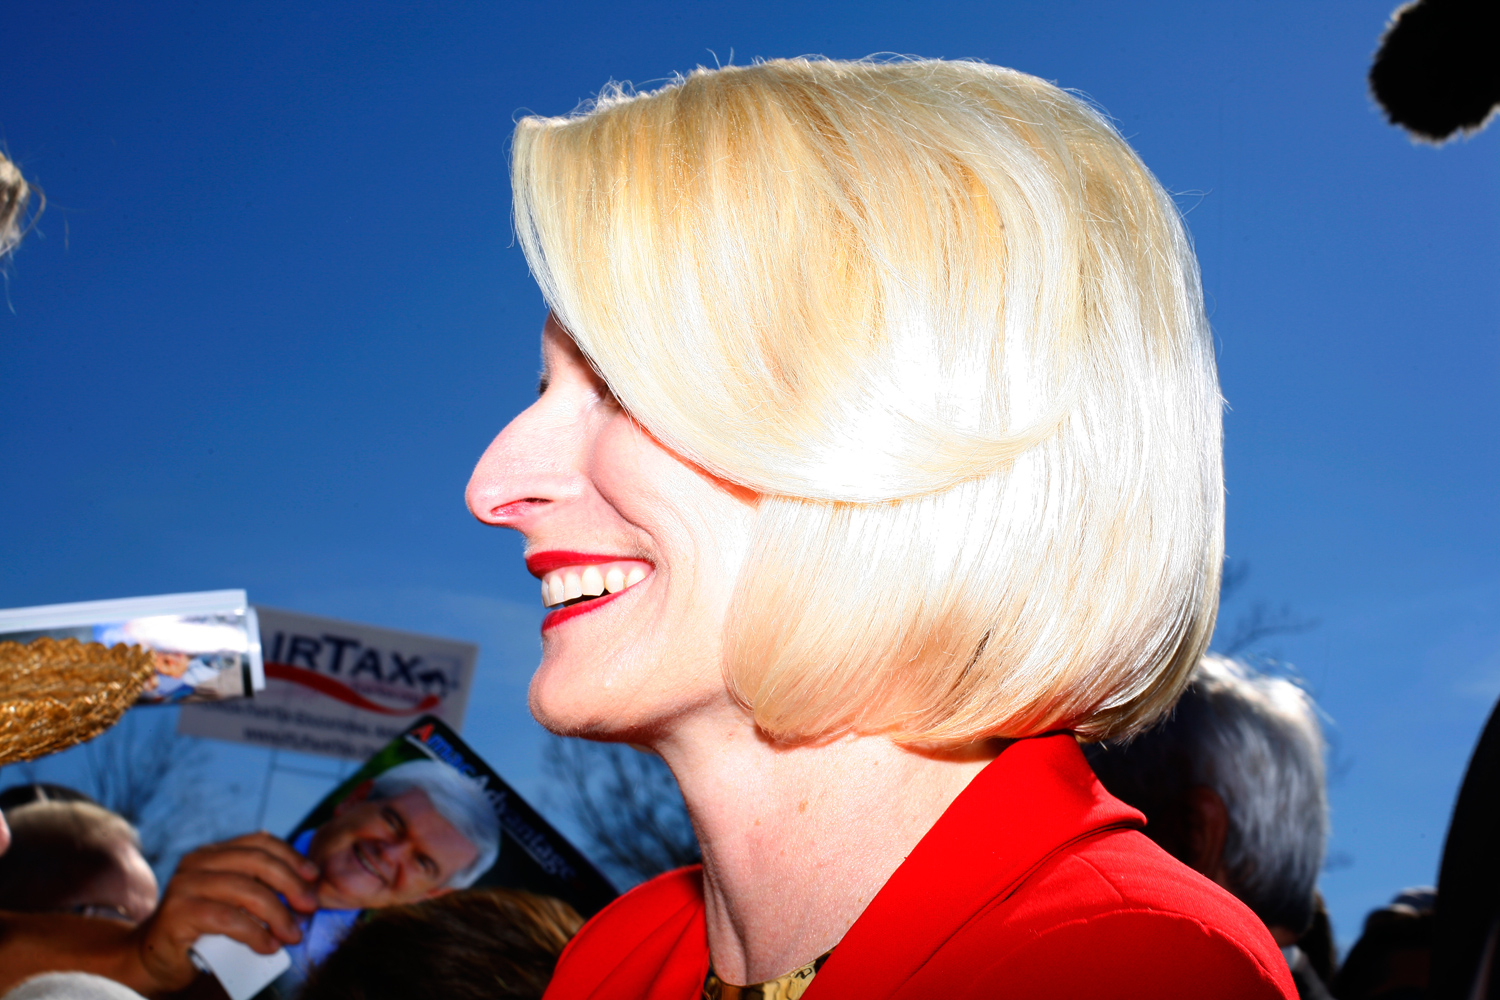 Callista Gingrich during a rally at The Villages, Fla., January 29, 2012.